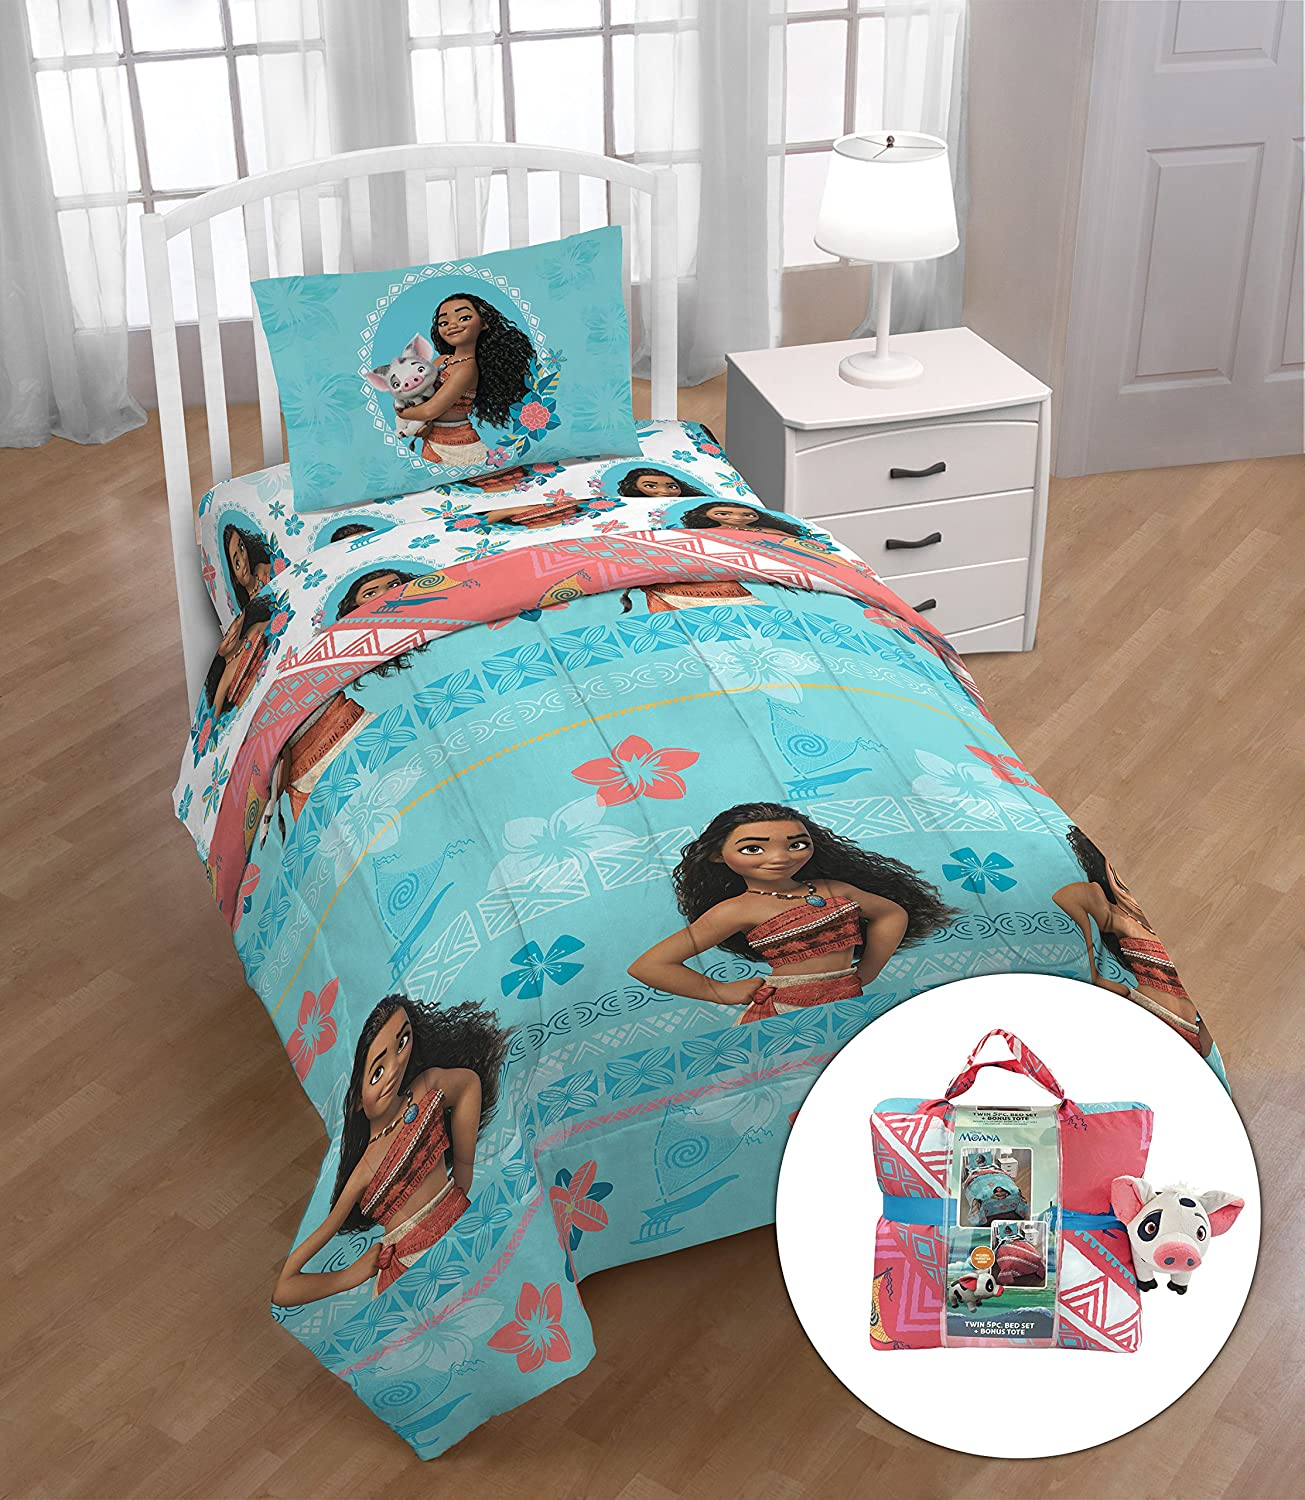 Disney Moana Twin Bed Set Comforter, Sheets, Pillowcase,Tote & Mini Pua Pillow Buddy, Kid's Bedding, Kid's Bedding Jay Franco & Sons Inc